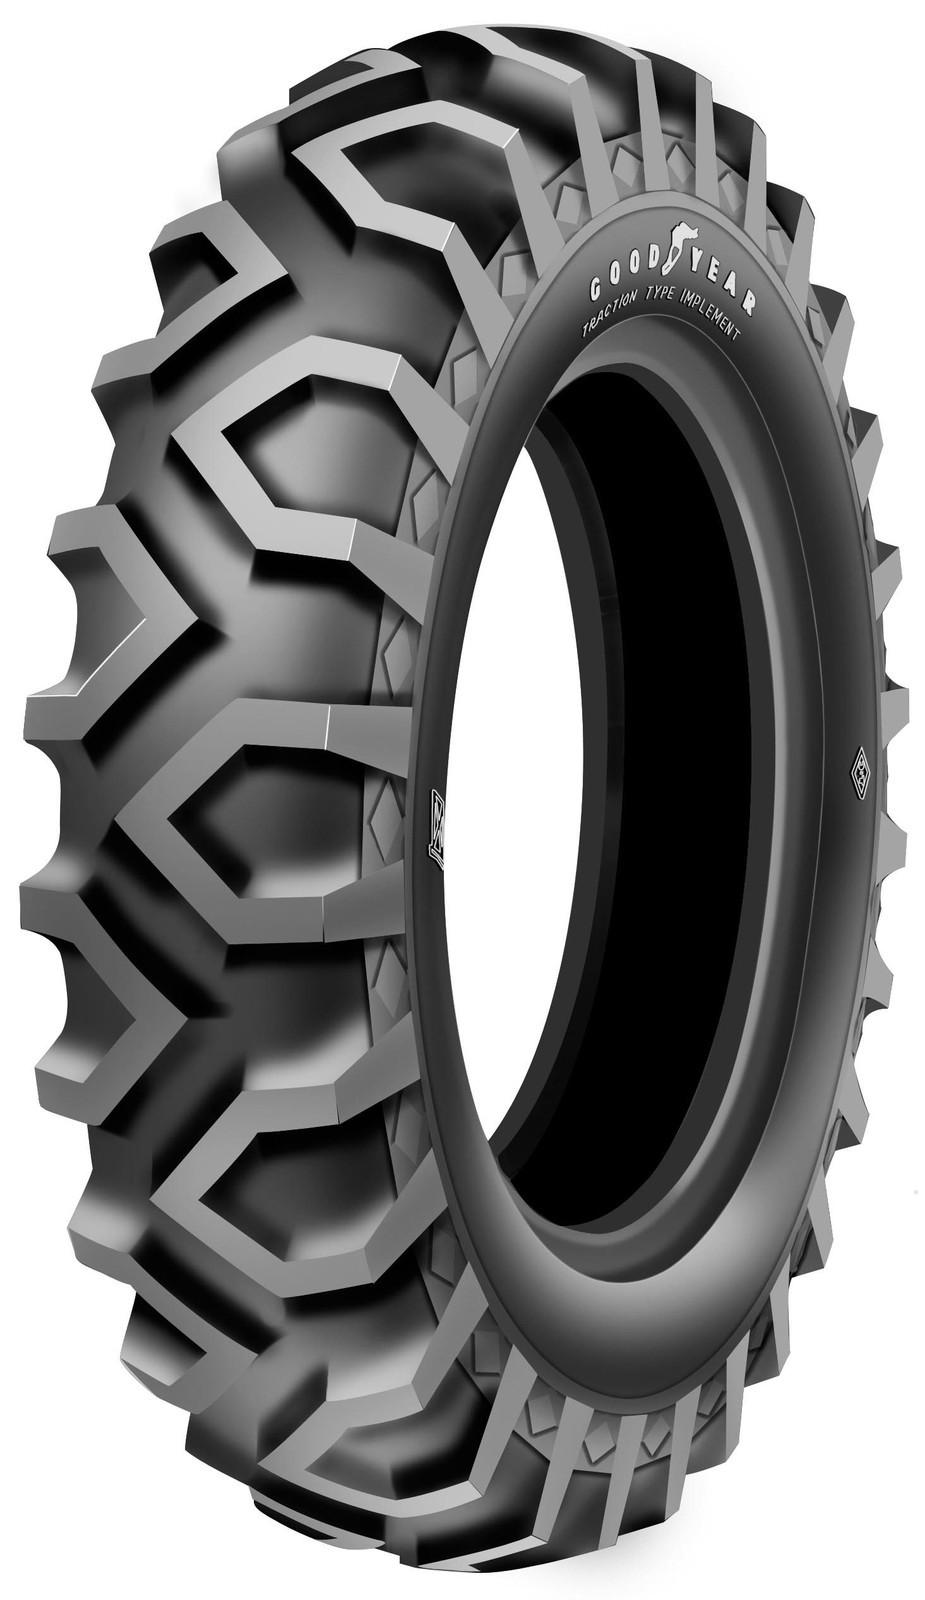 Goodyear Traction Implement 5 90 15 4 Ply Skid Steer Tire